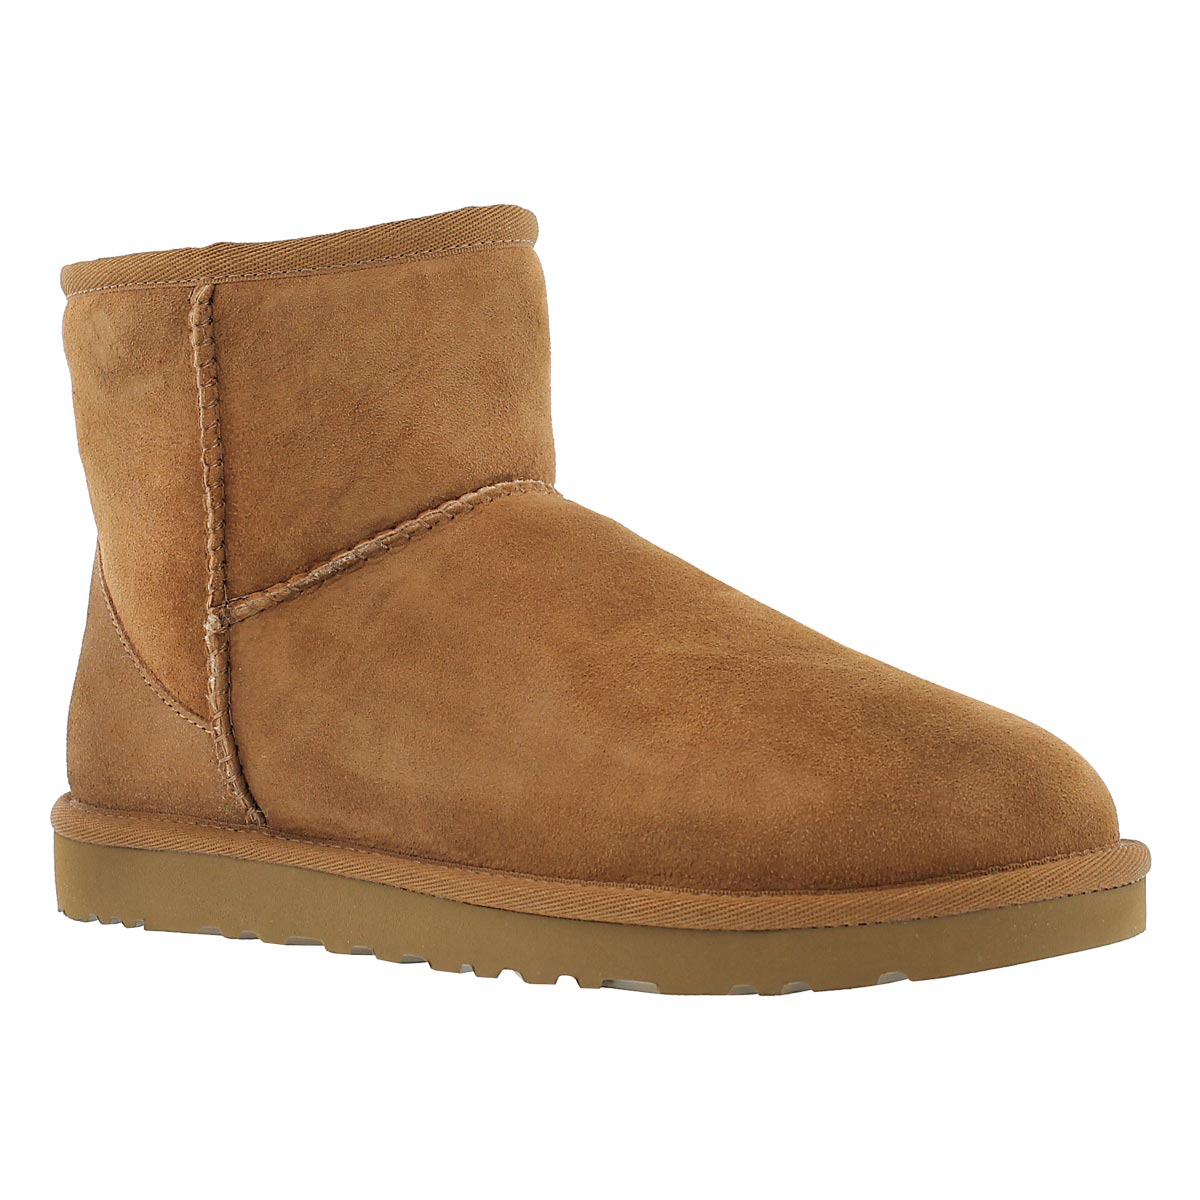 Lds Classic Mini chestnut sheepskin boot